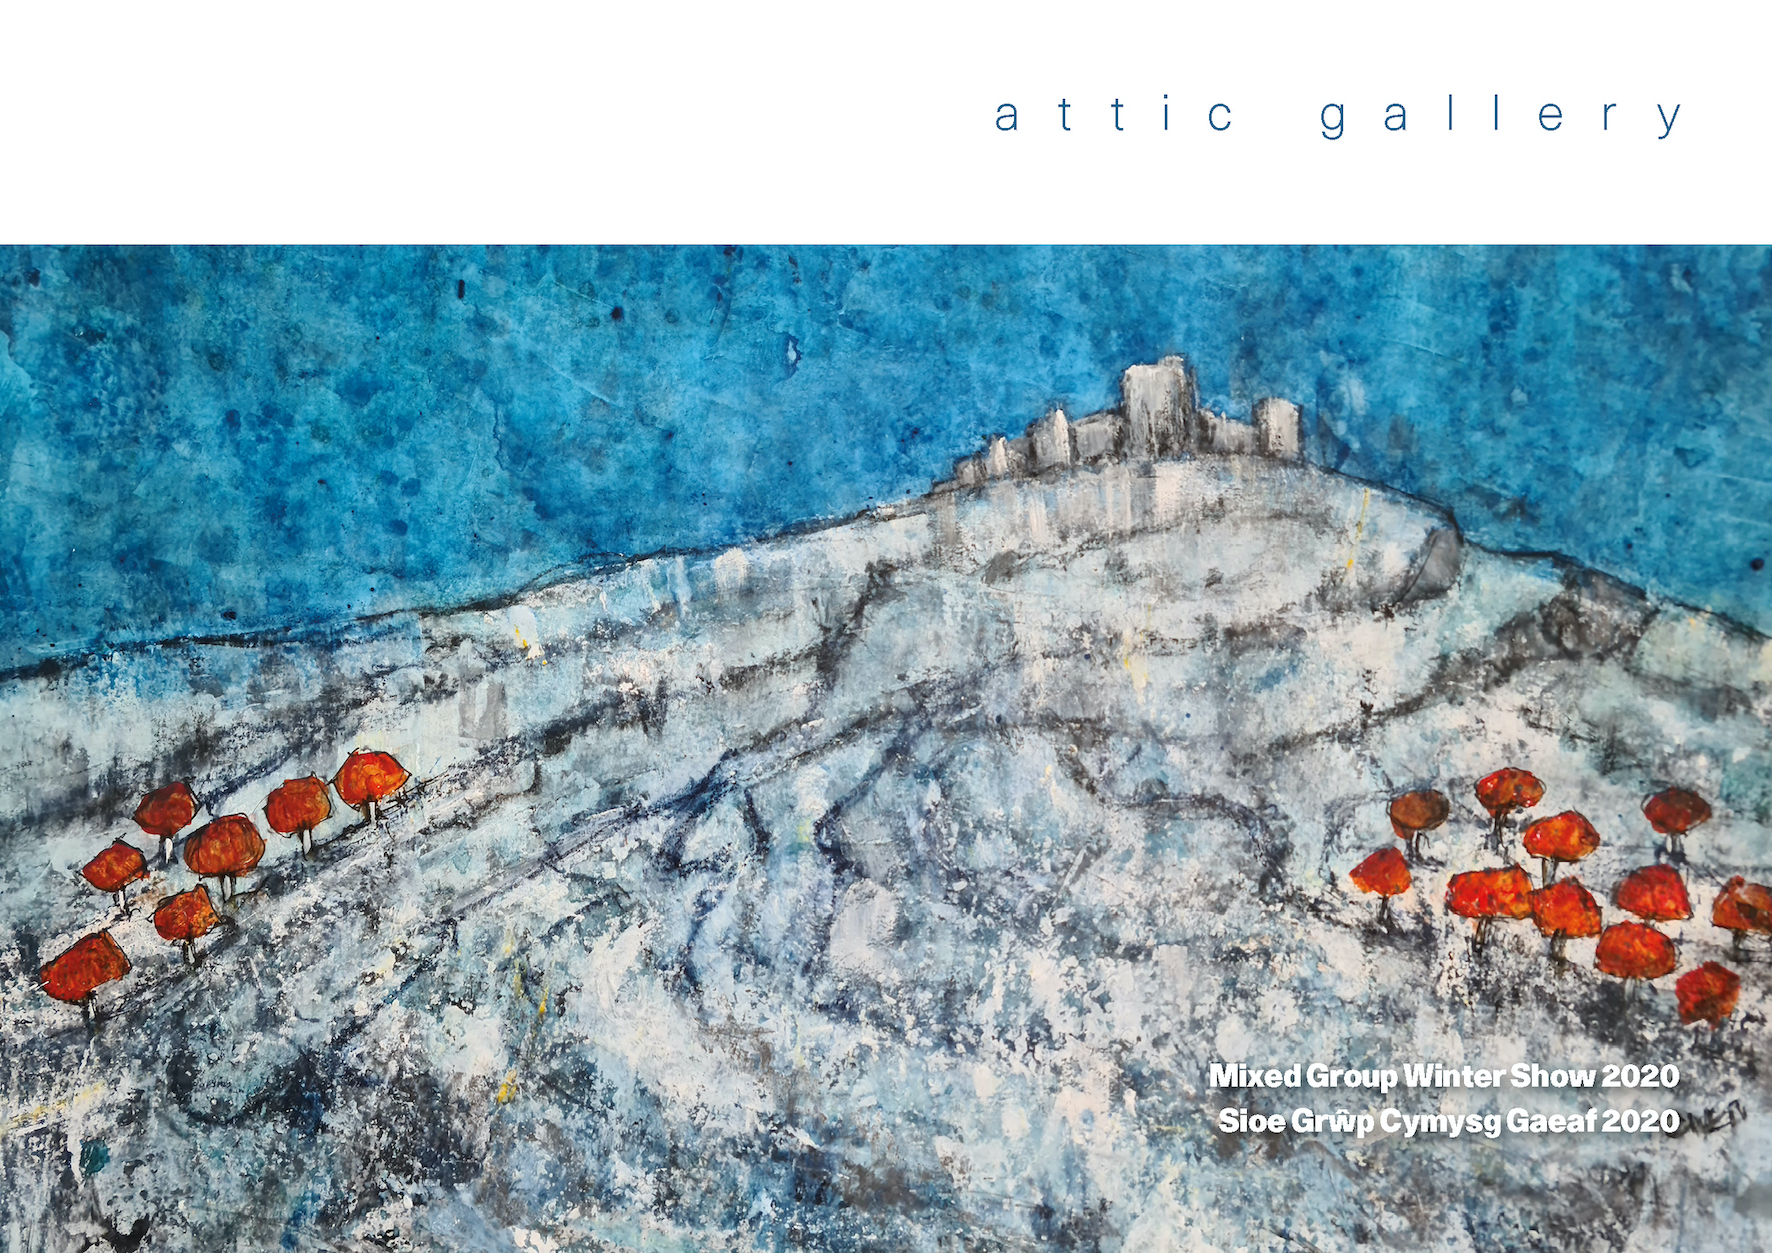 Attic Gallery Winter Mixed Group Show 2020